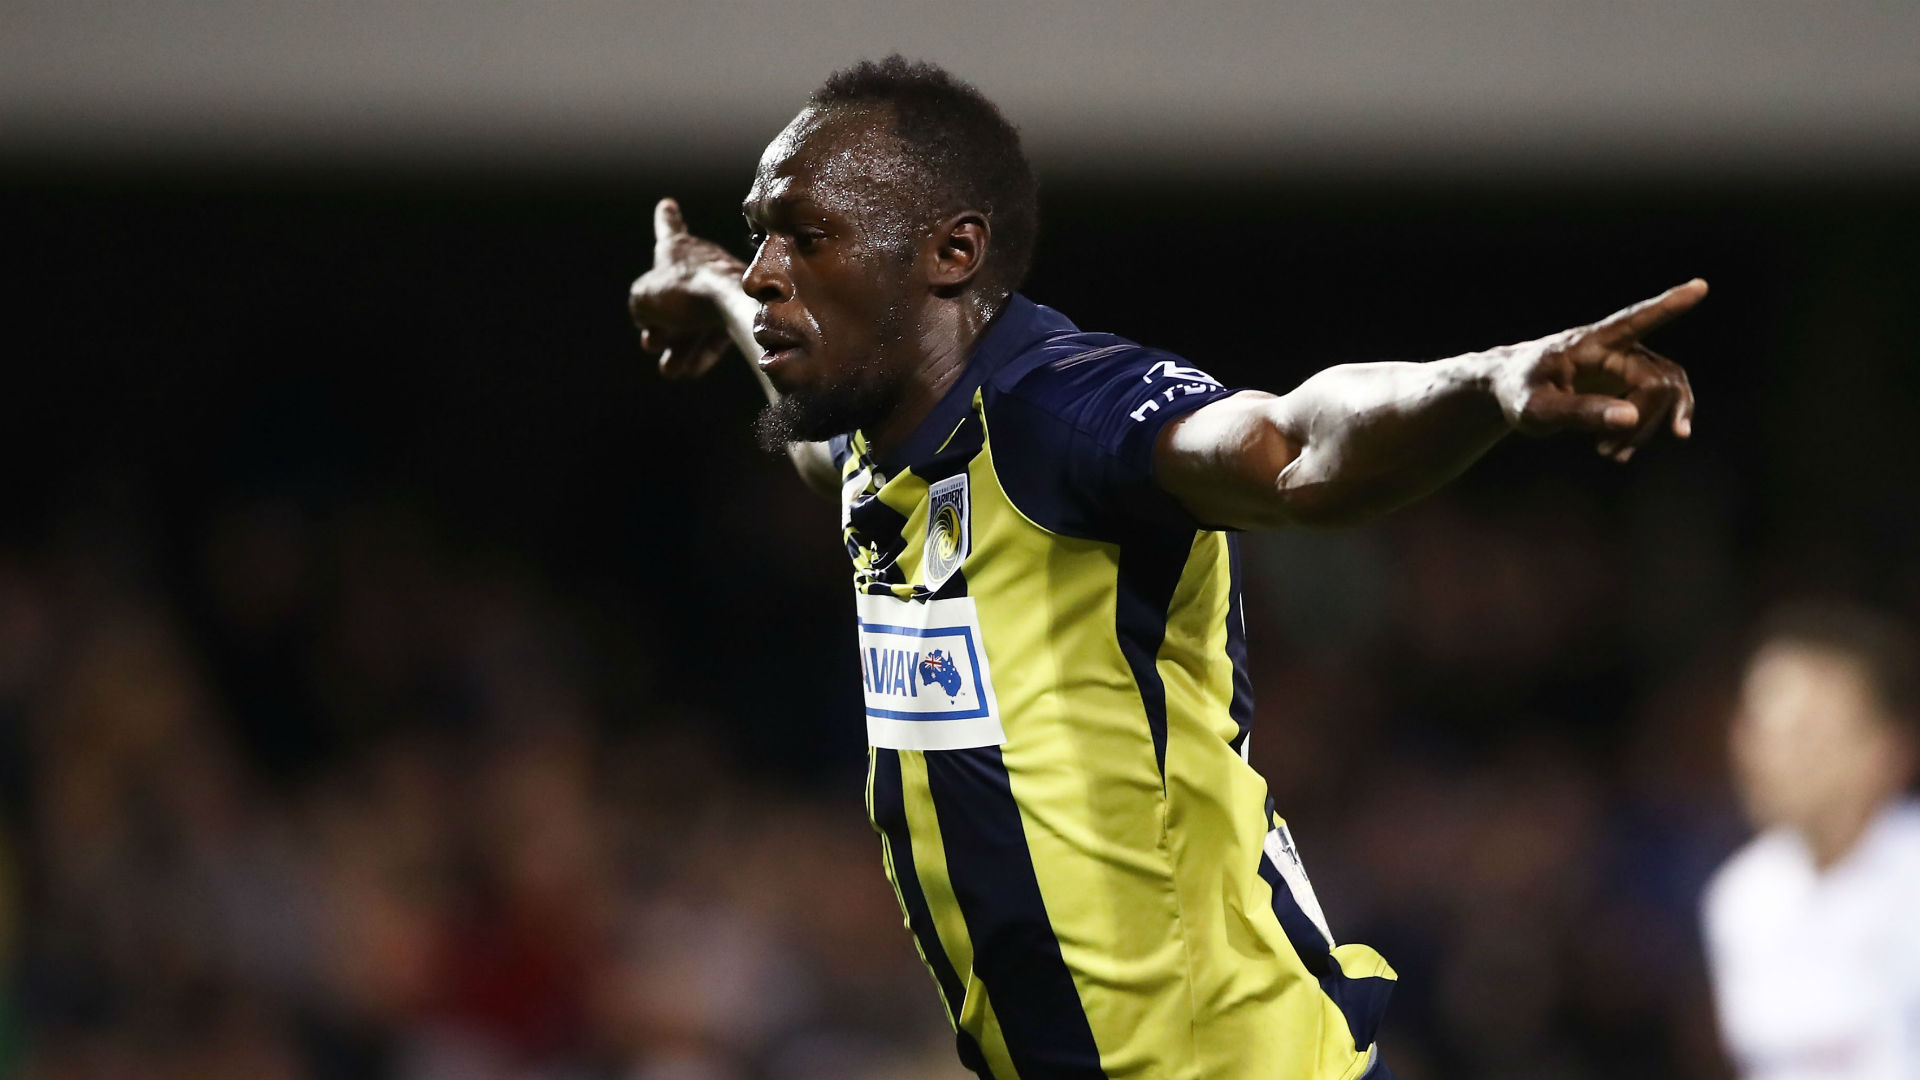 Usain Bolt Scores First Goals In Professional Football